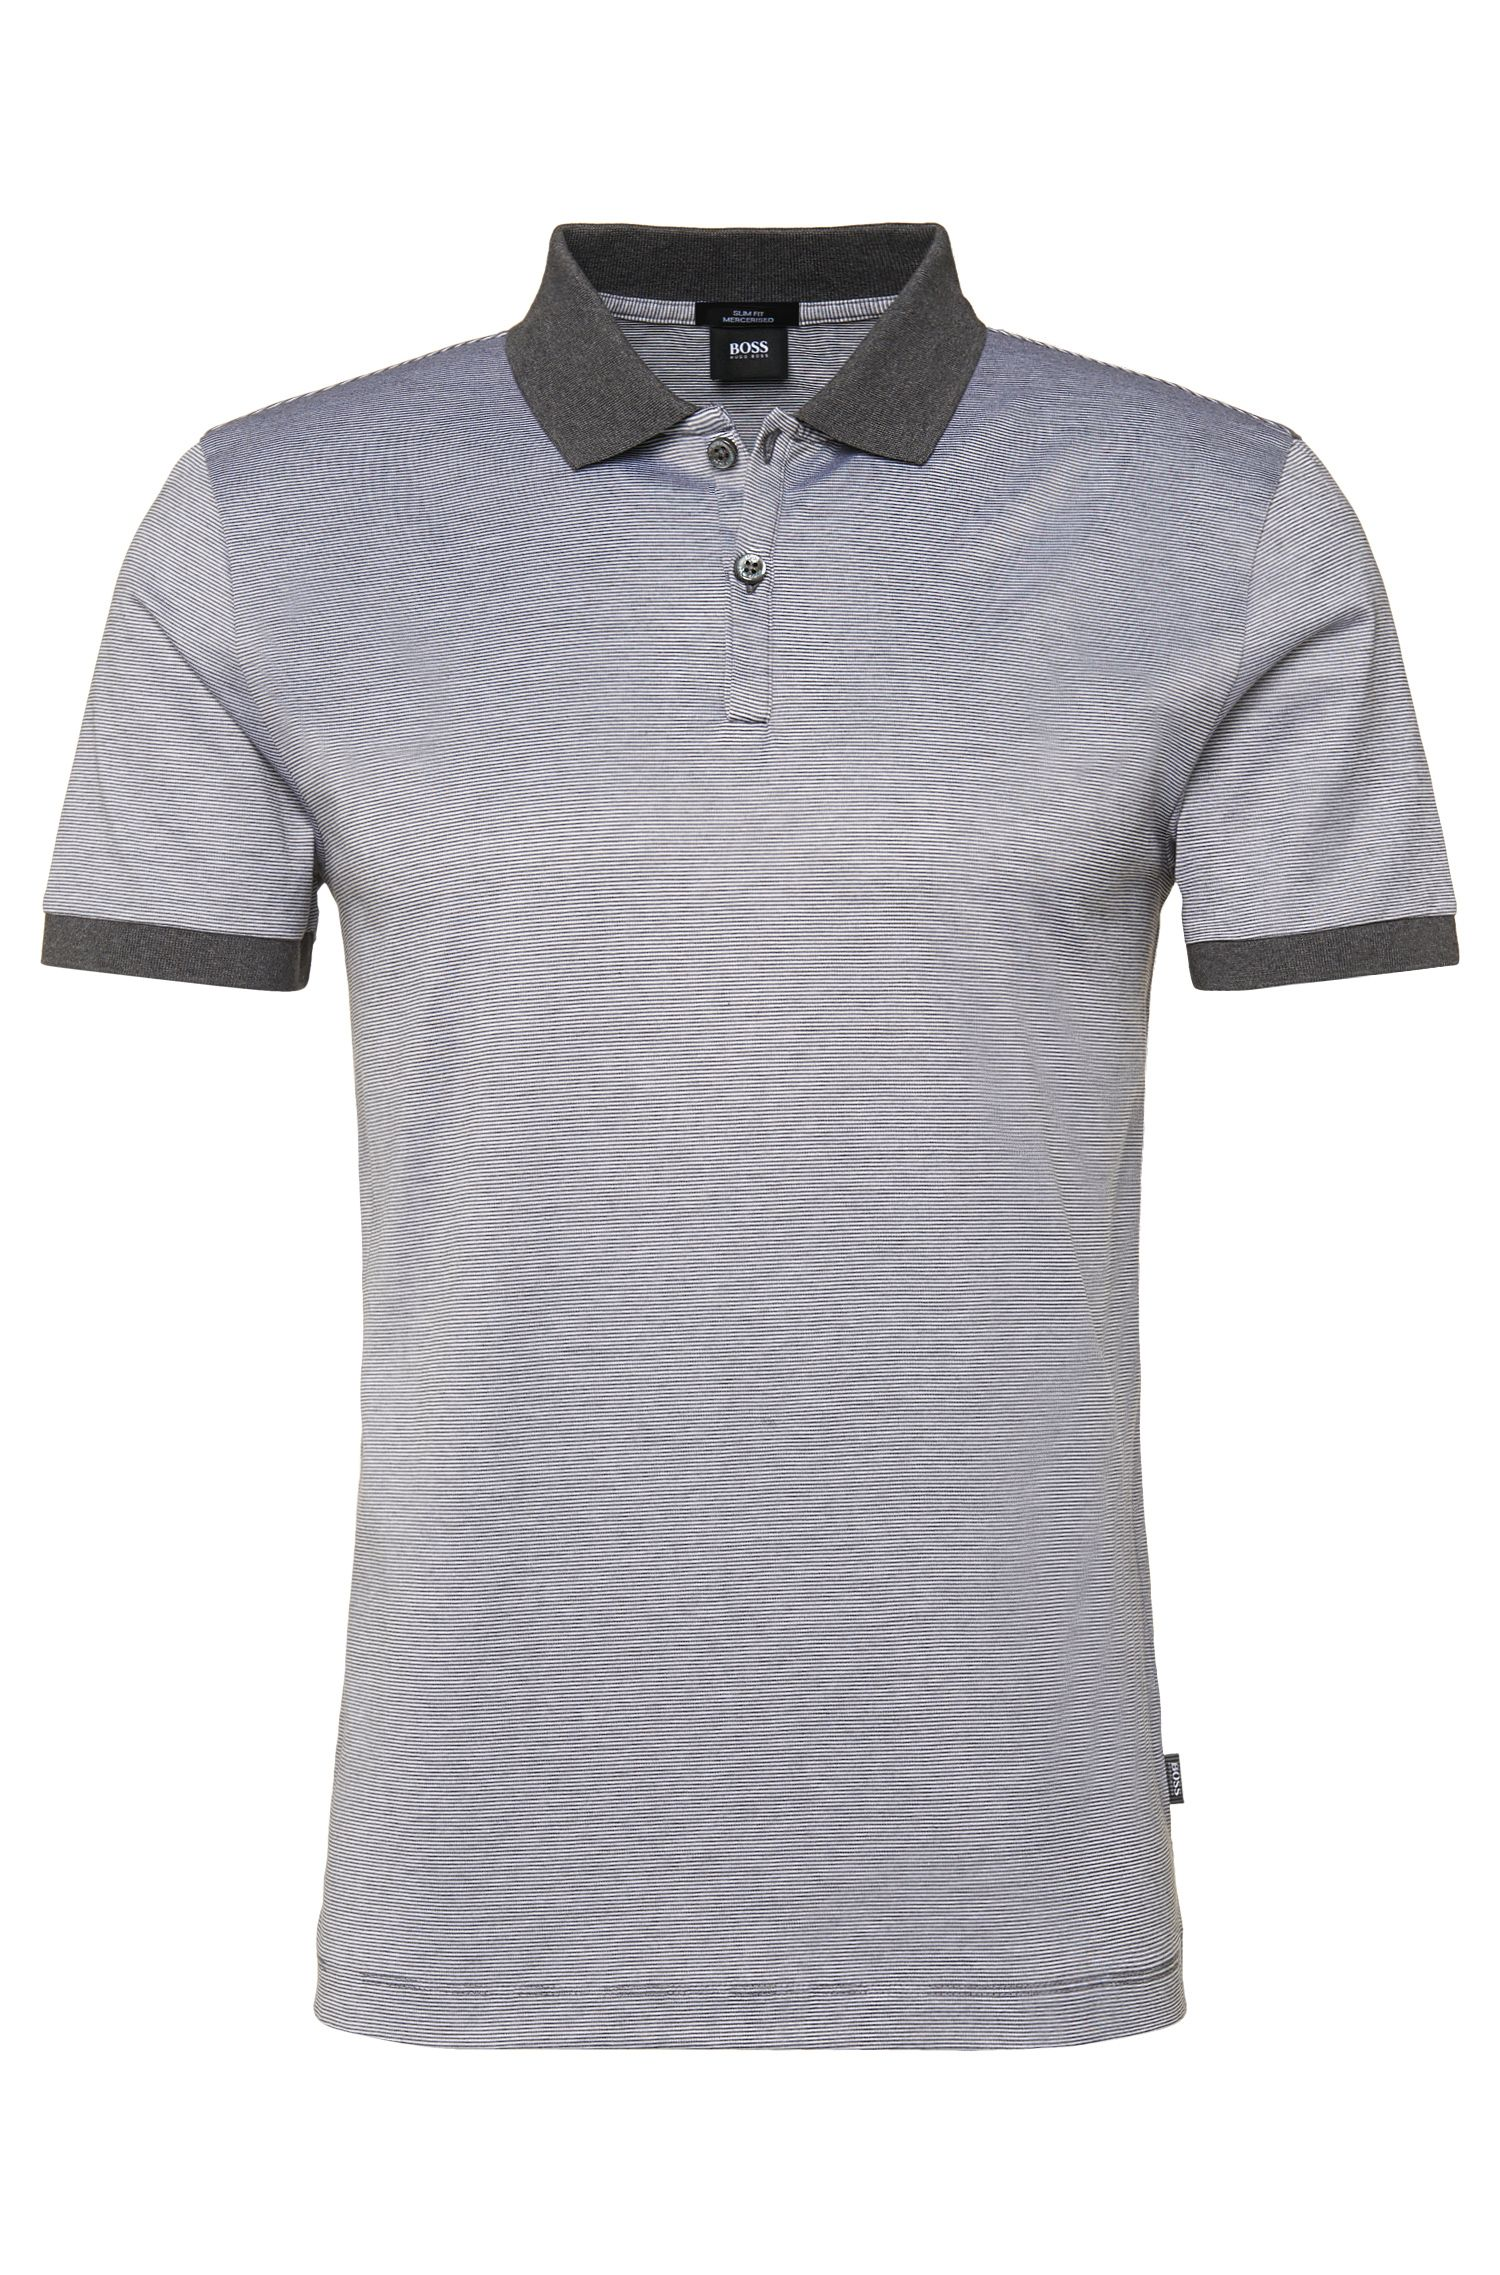 'Penrose' | Slim Fit, Mercerized Cotton Striped Polo